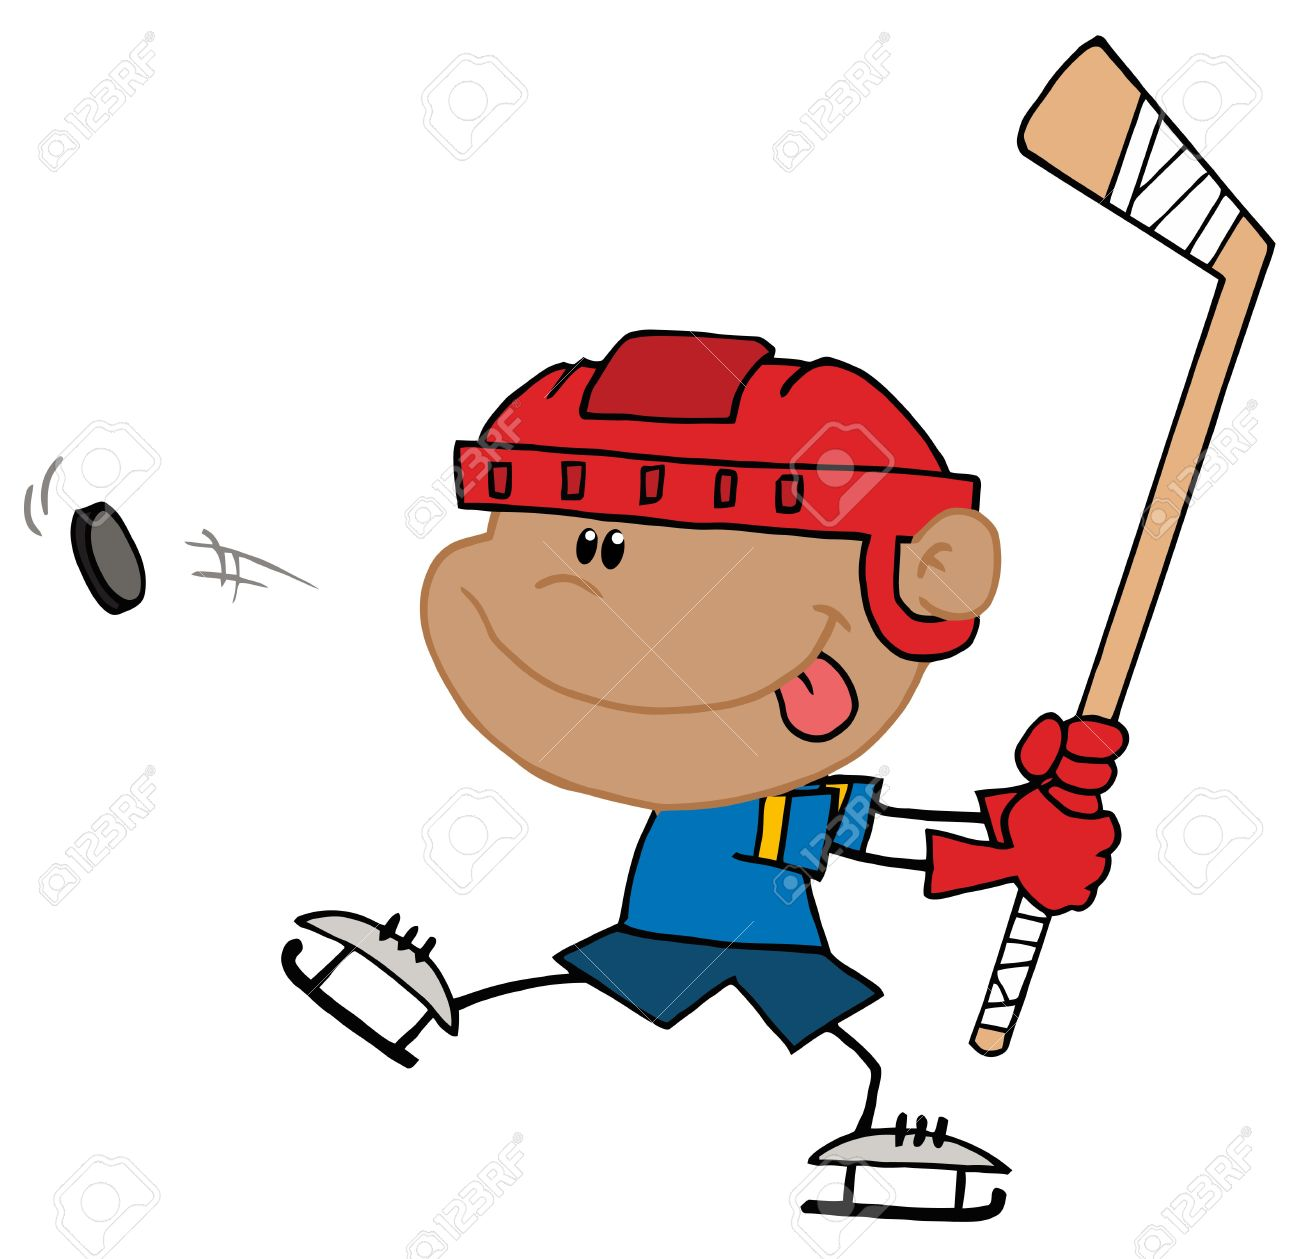 Boy Sticking His Tongue Out And Hitting A Hockey Puc Stock Vector - 6905992